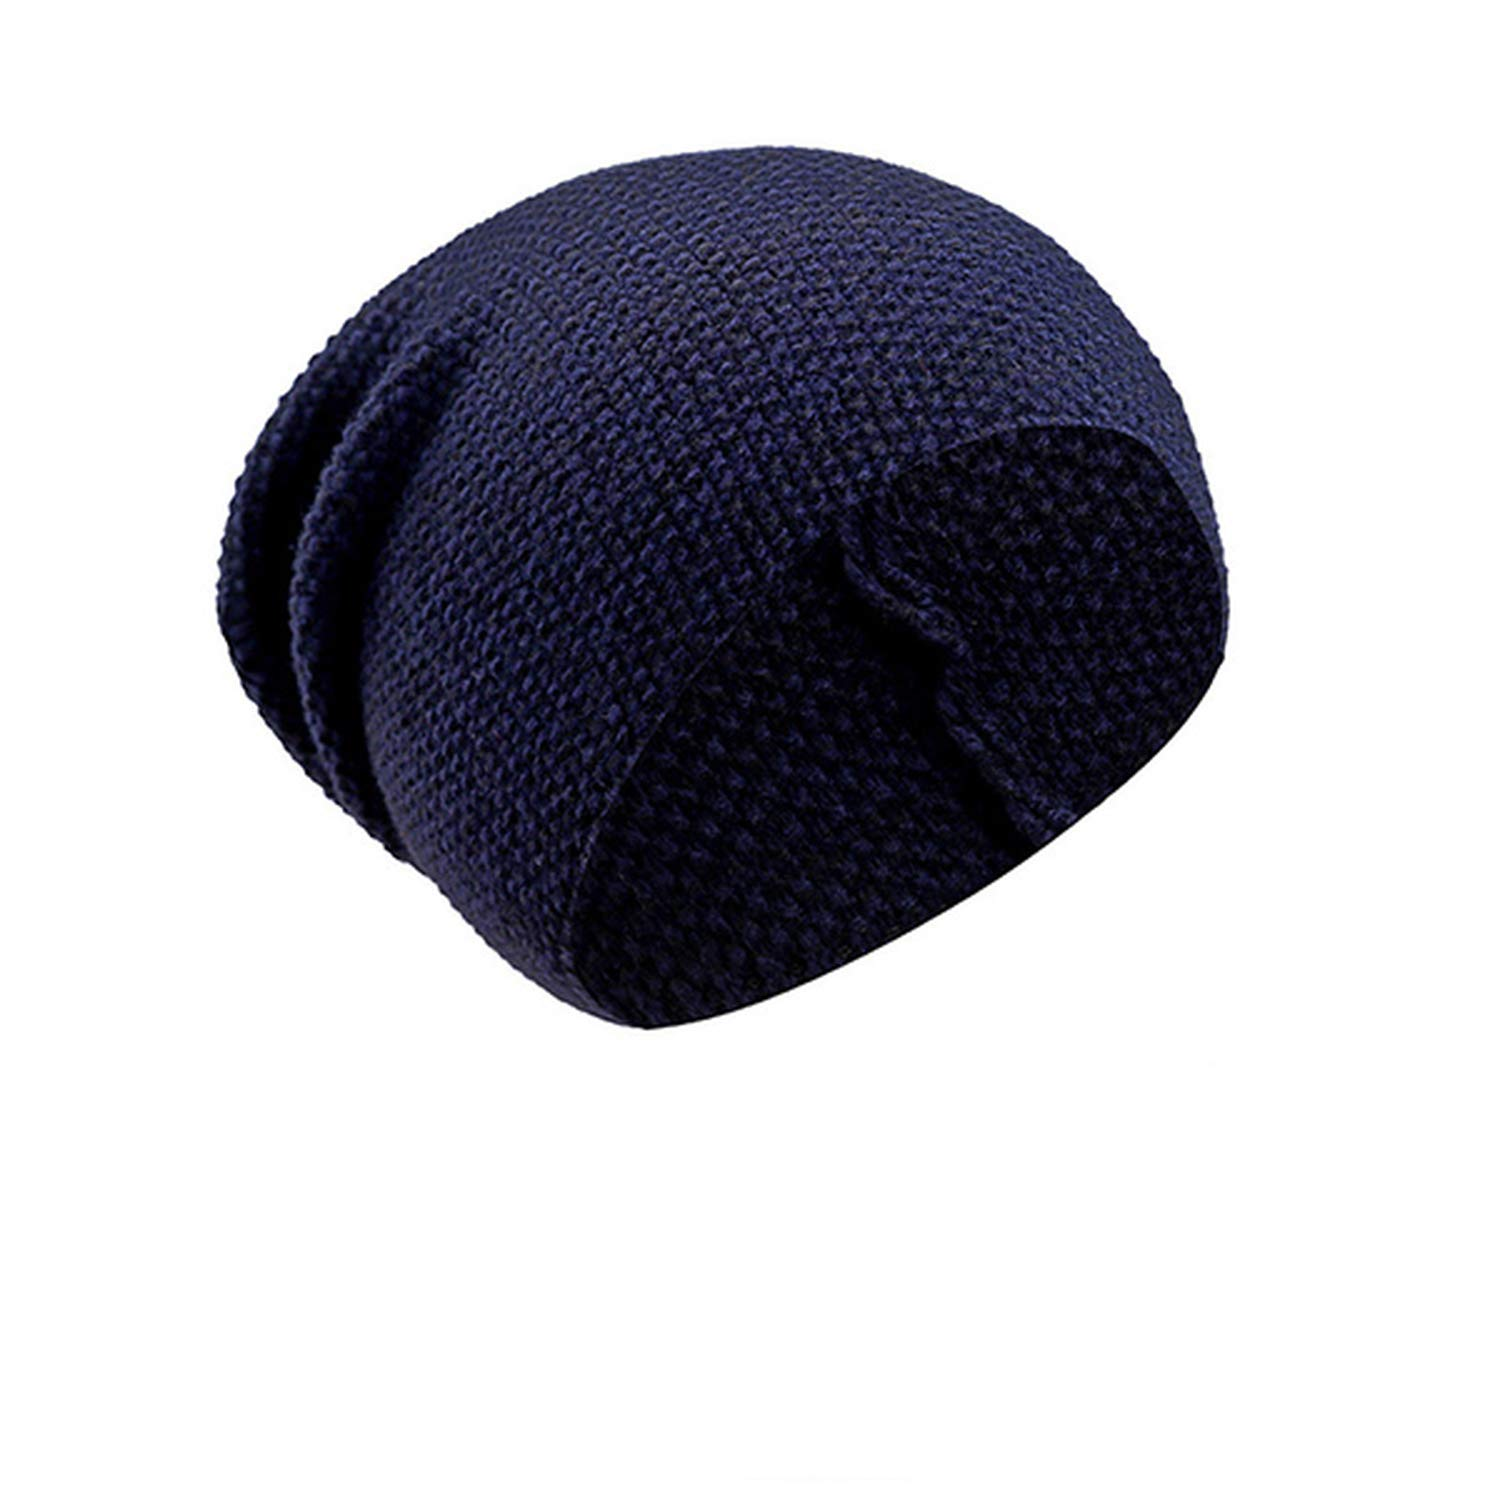 Ron Kite Knitted Hat Female Outdoor Casual Plain Bonnet Autumn Slouchy Baggy Beanies for Men Winter Cap Womens